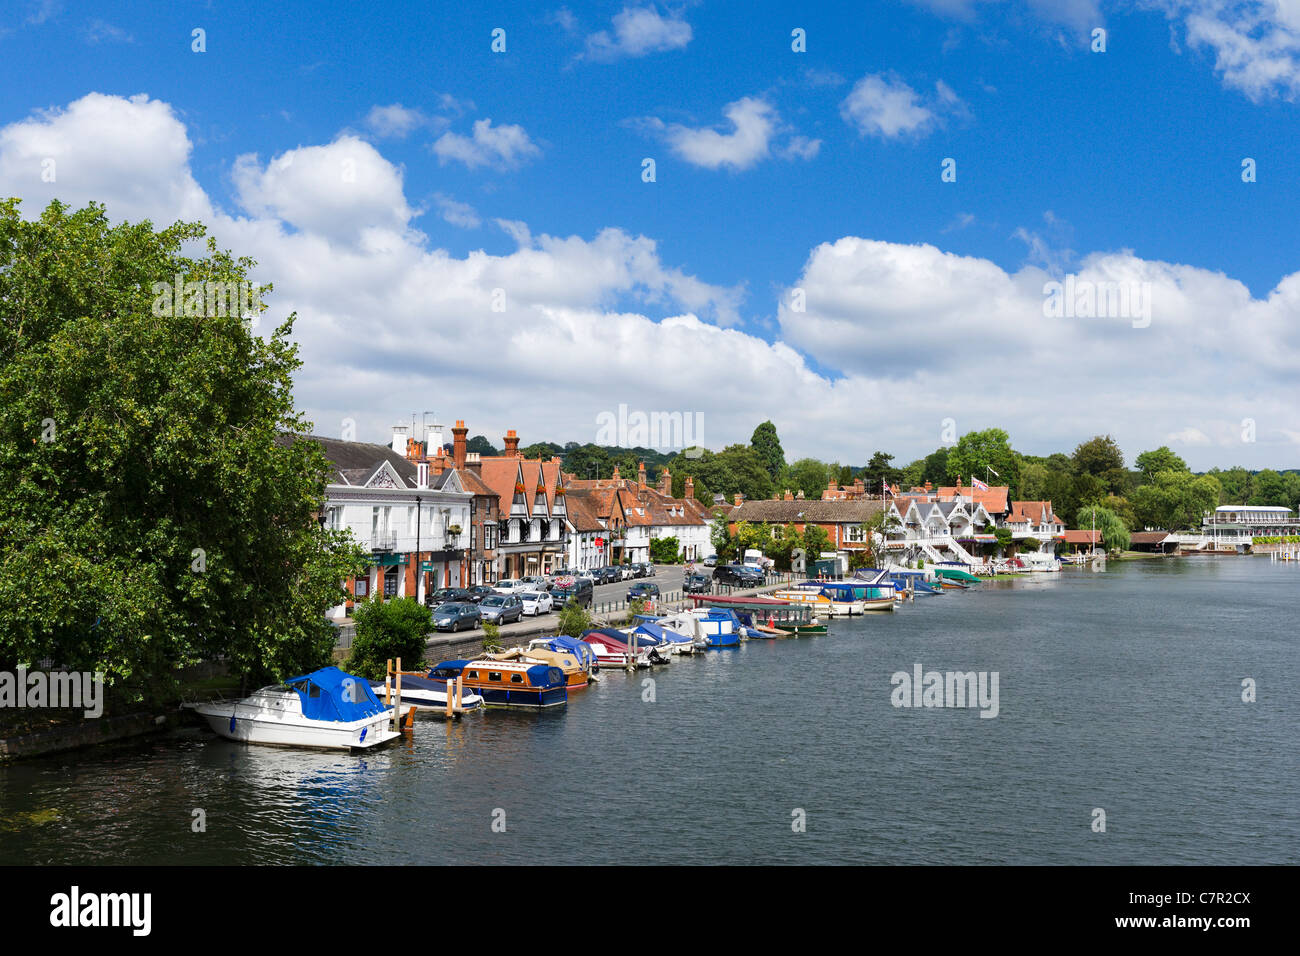 View of the town from the bridge over the River Thames at Henley-on-Thames, Oxfordshire, England, UK - Stock Image